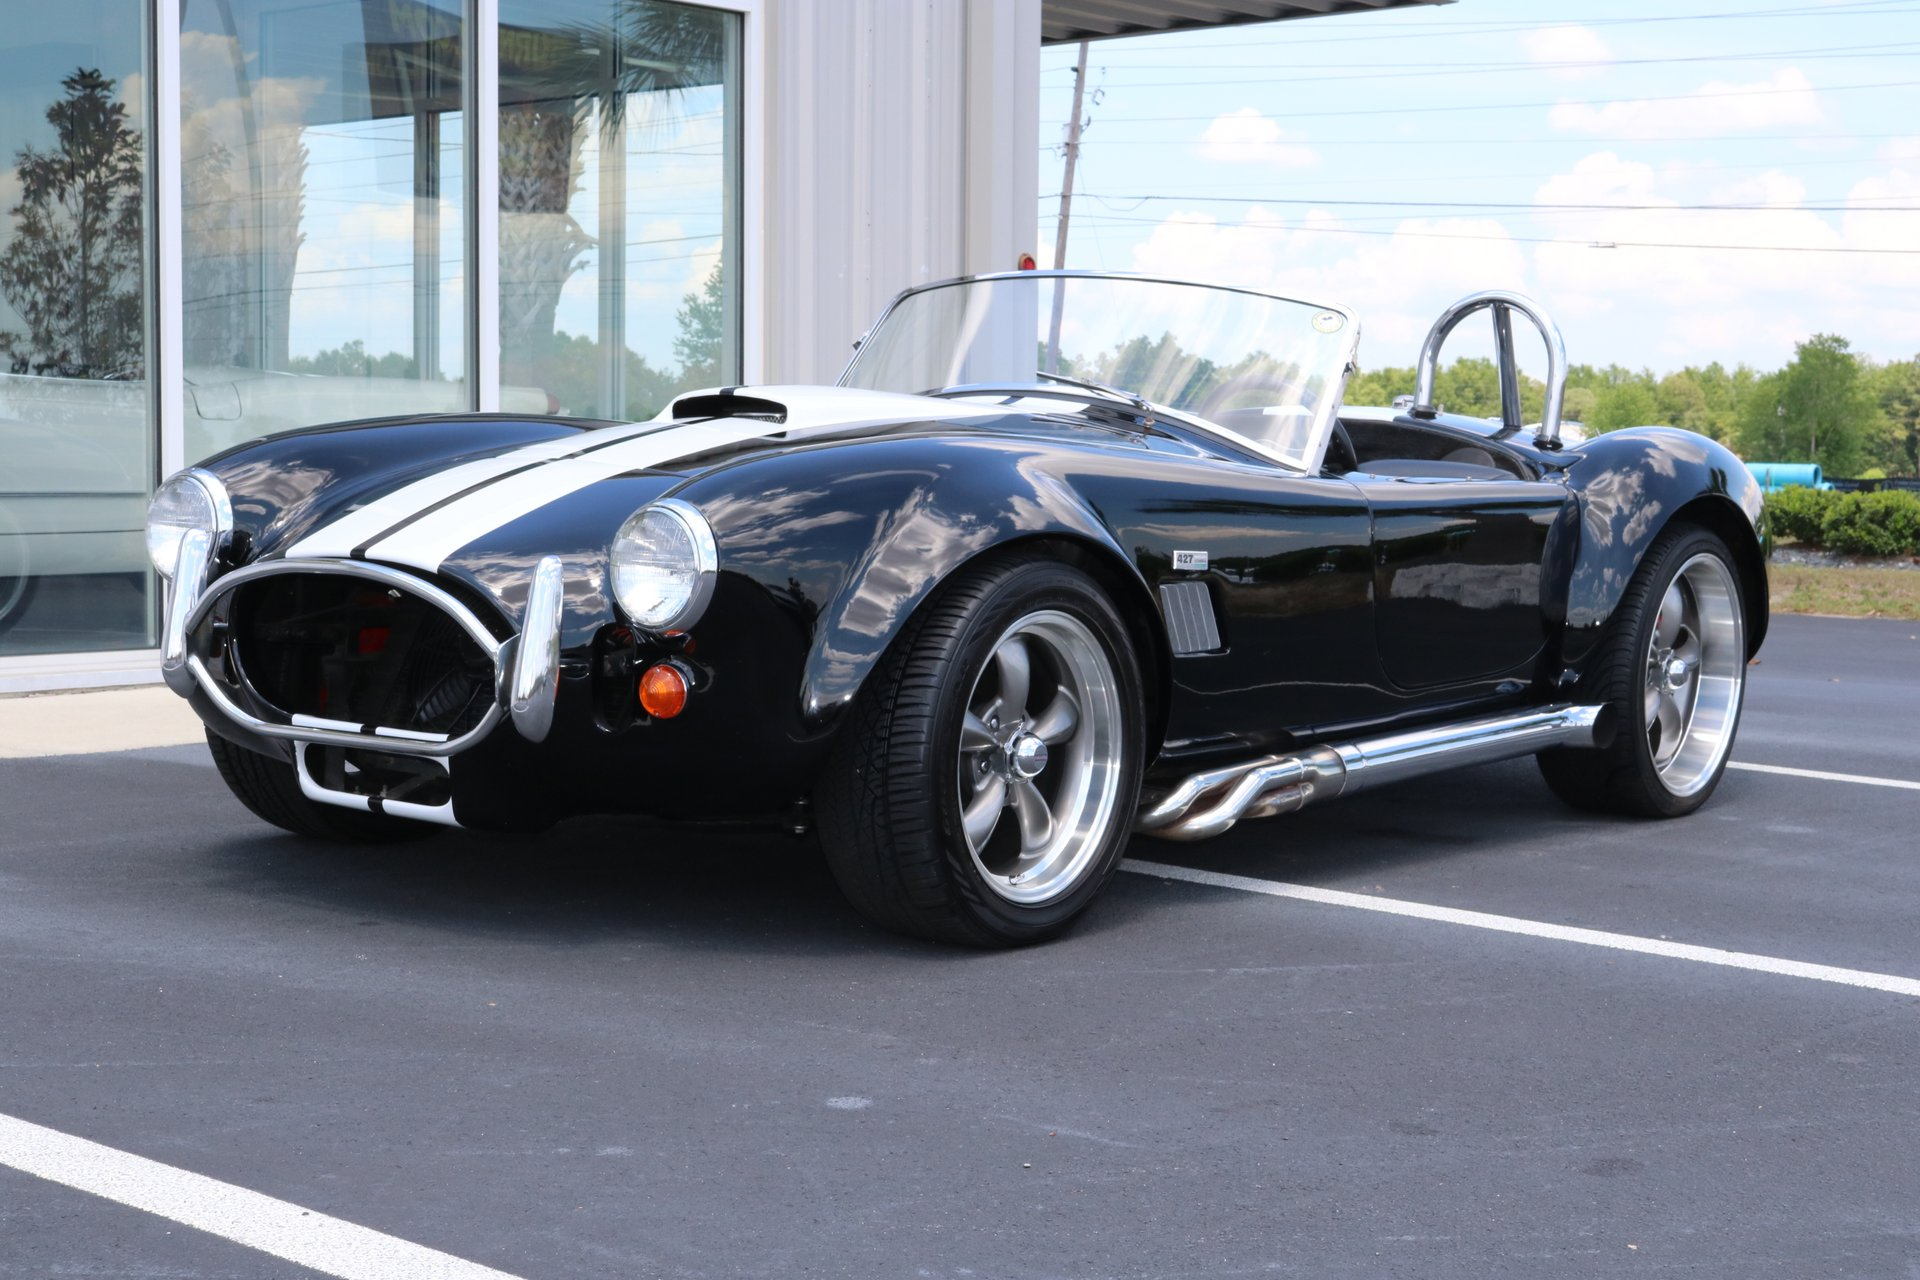 1967 Shelby Cobra for sale #4178 | MCG